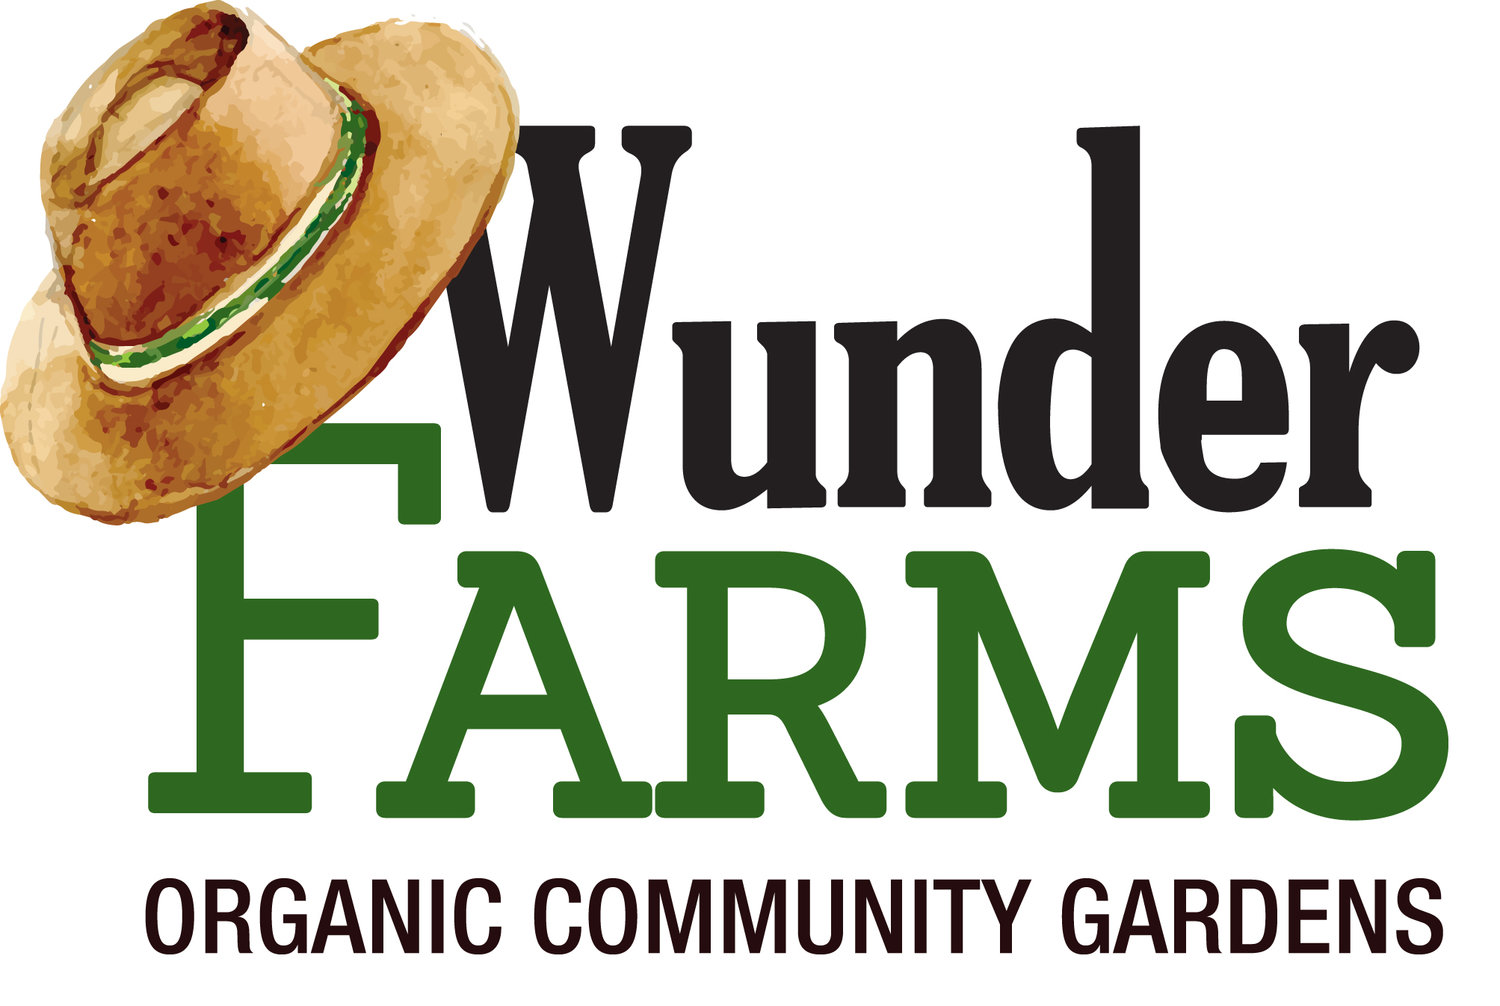 Wunderfarms